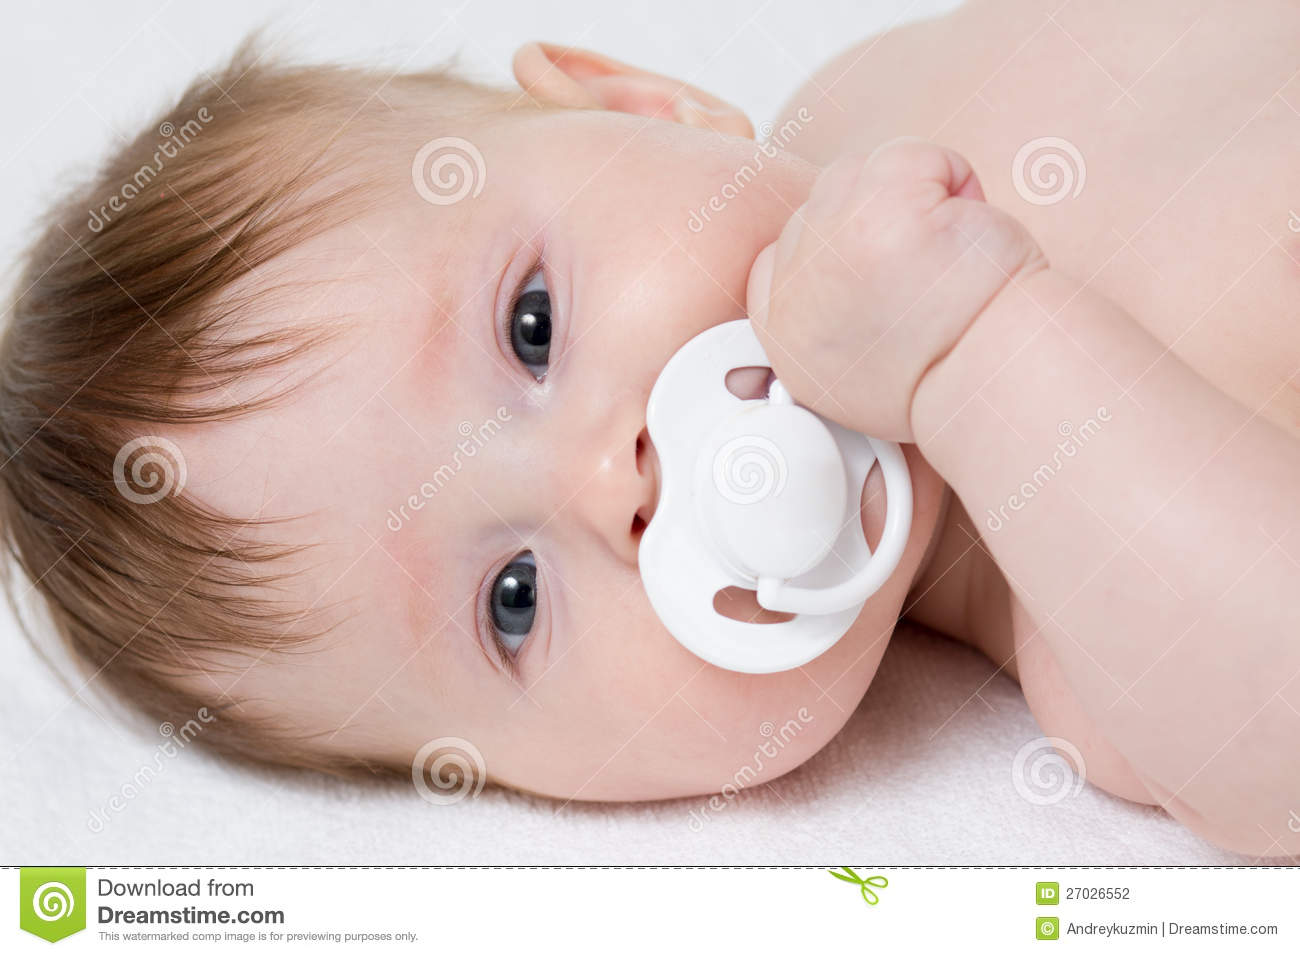 Baby with pacifier closeup